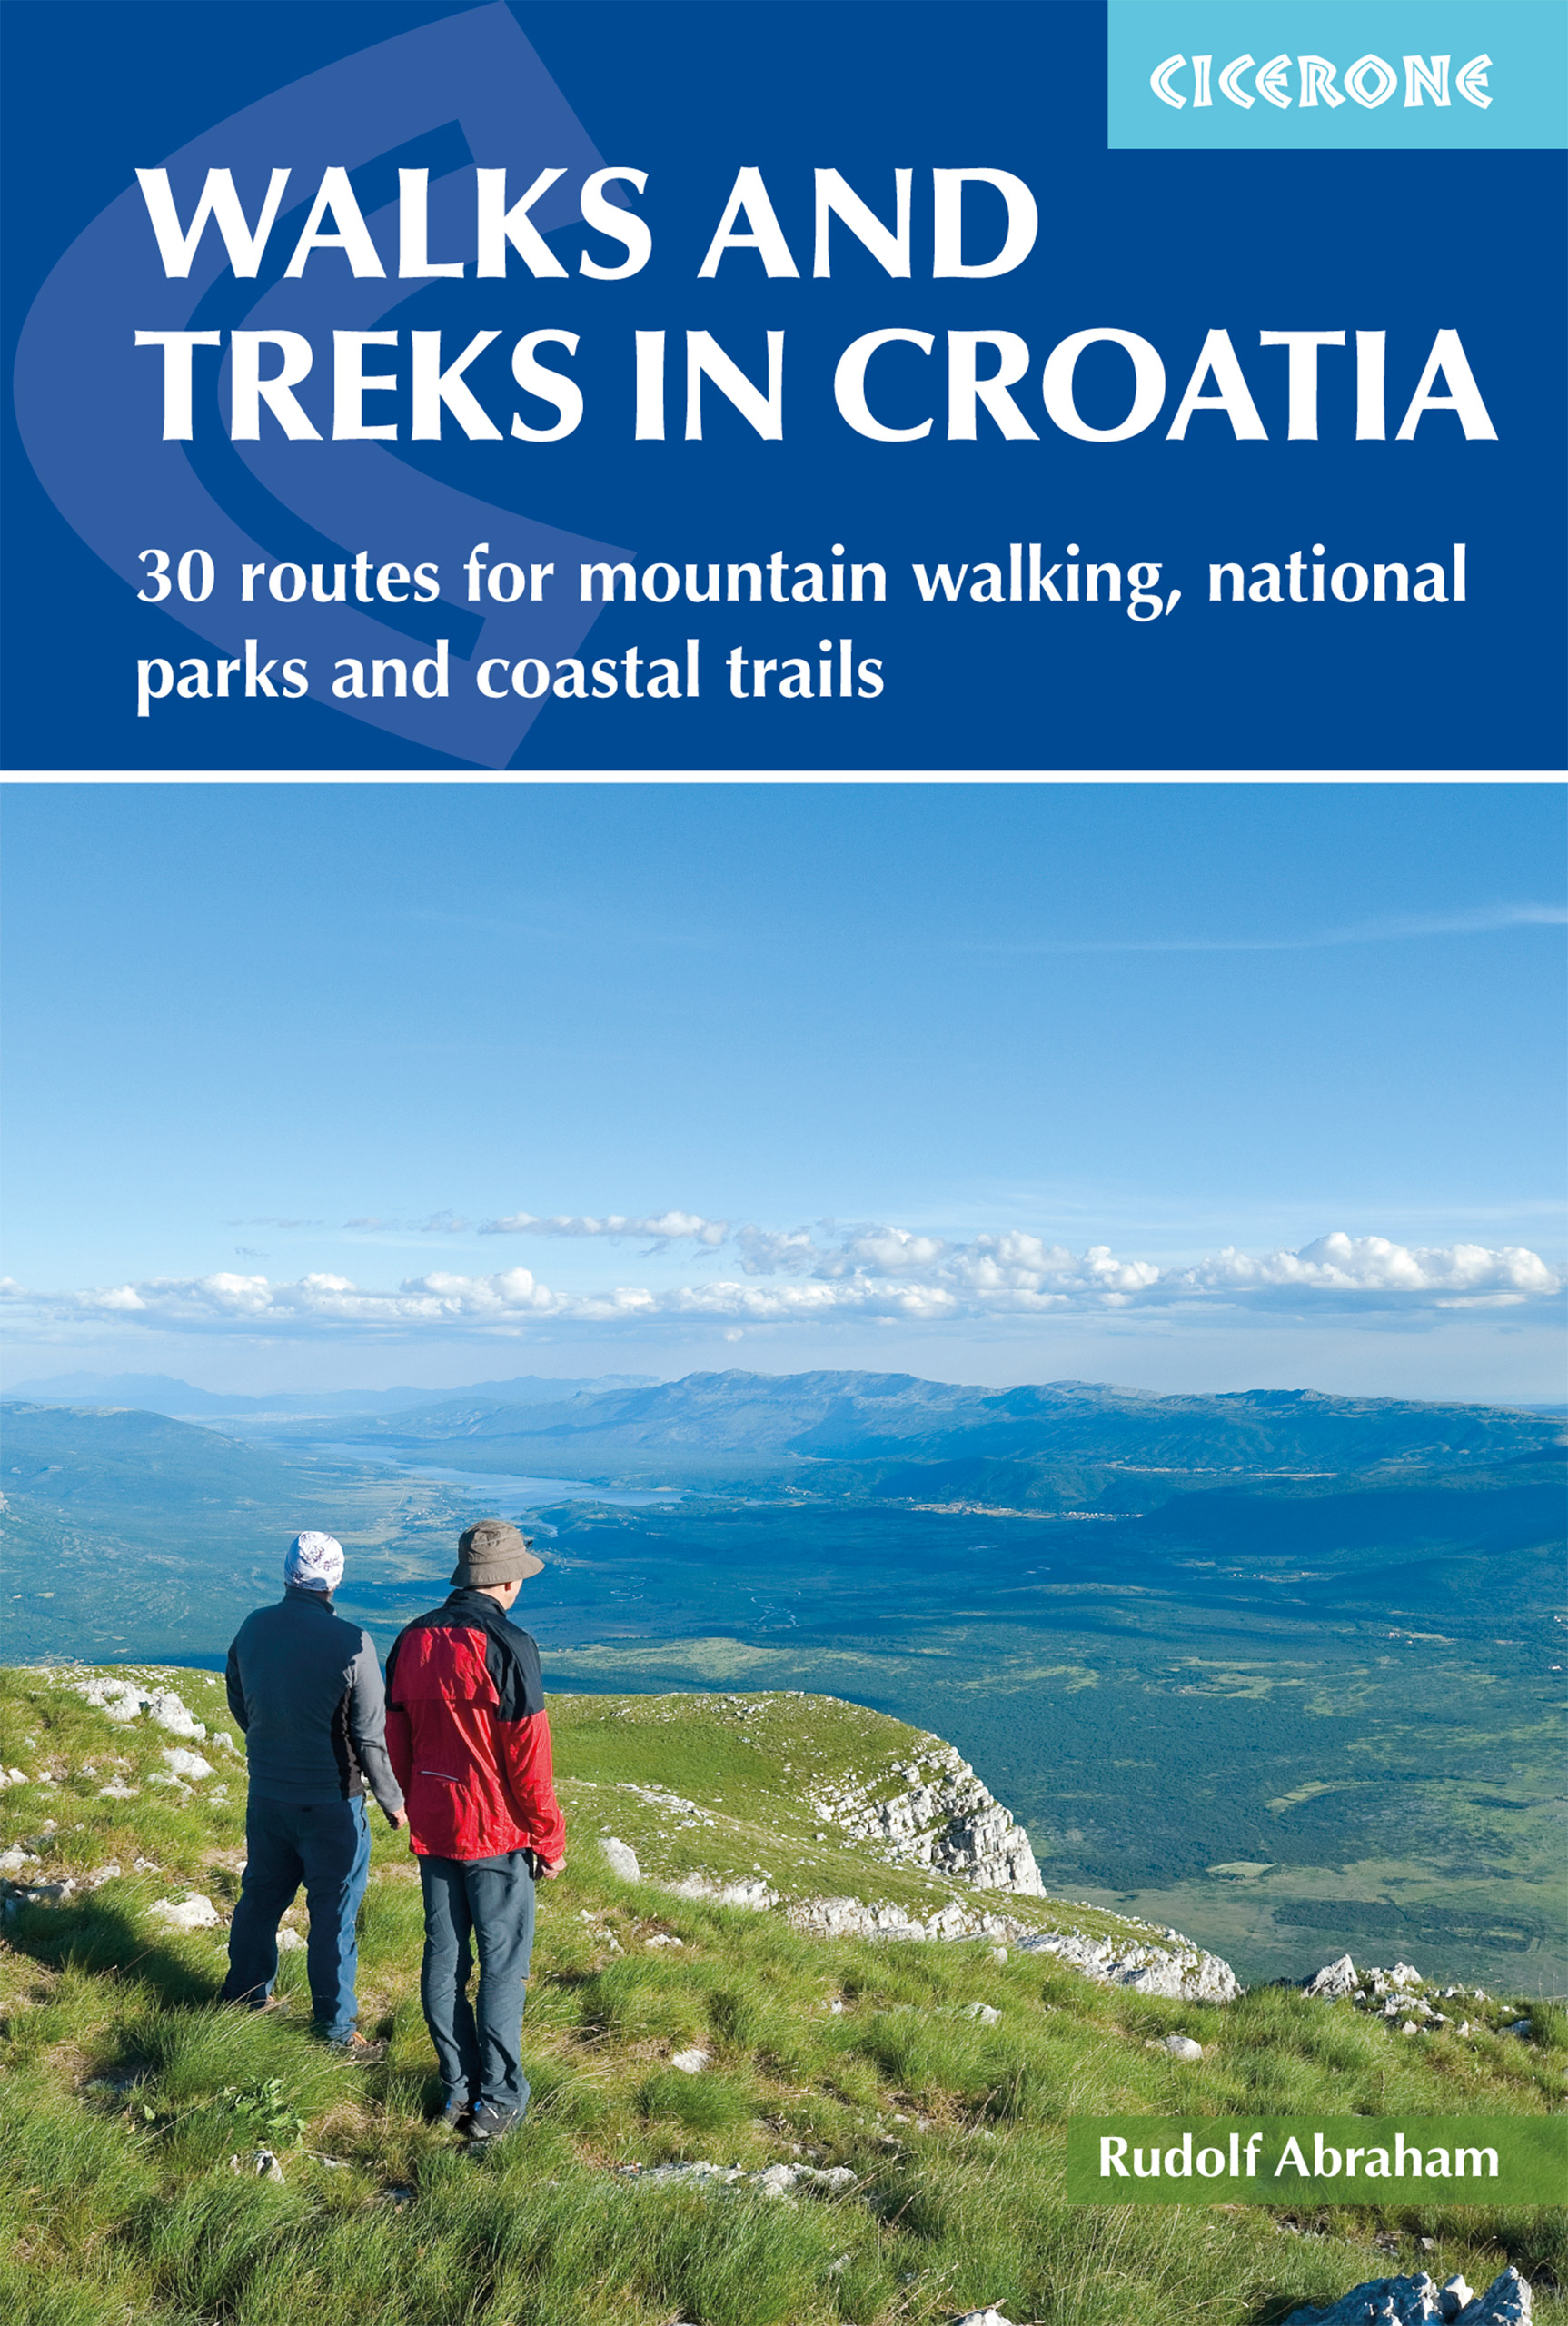 Walks and Treks in Croatia